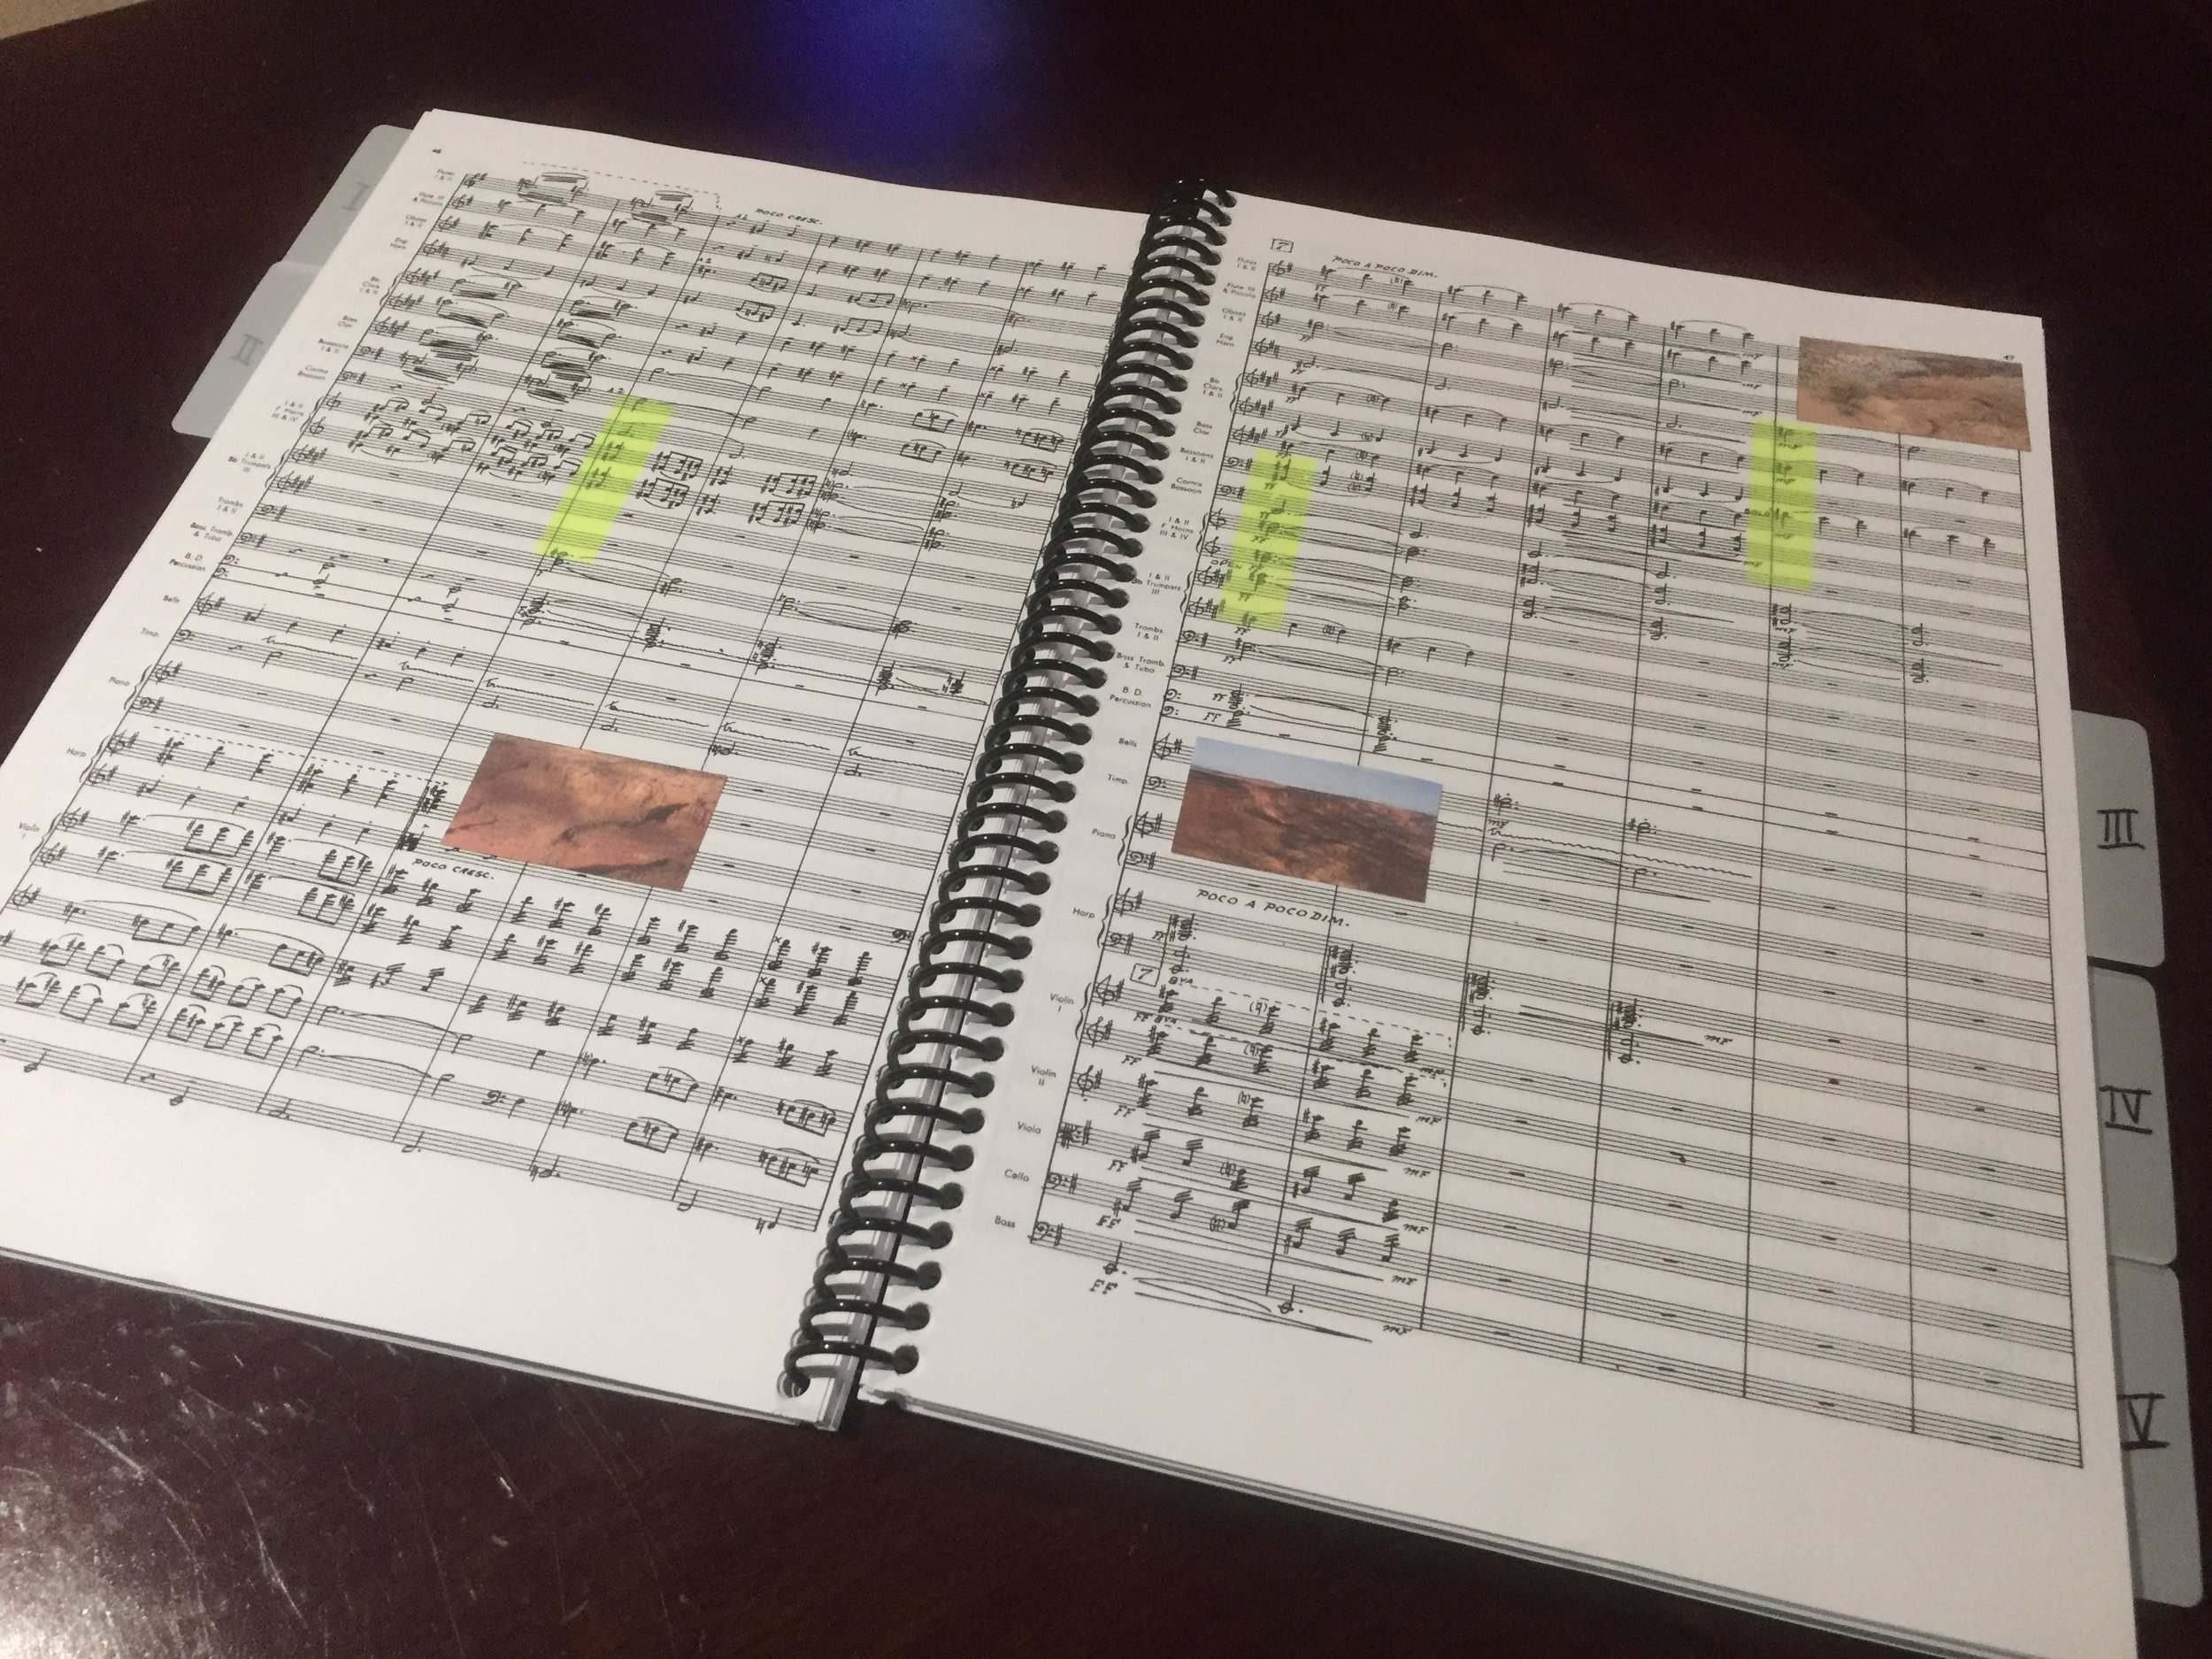 The rental materials include a carefully marked miniature score for the operator to use during performance.